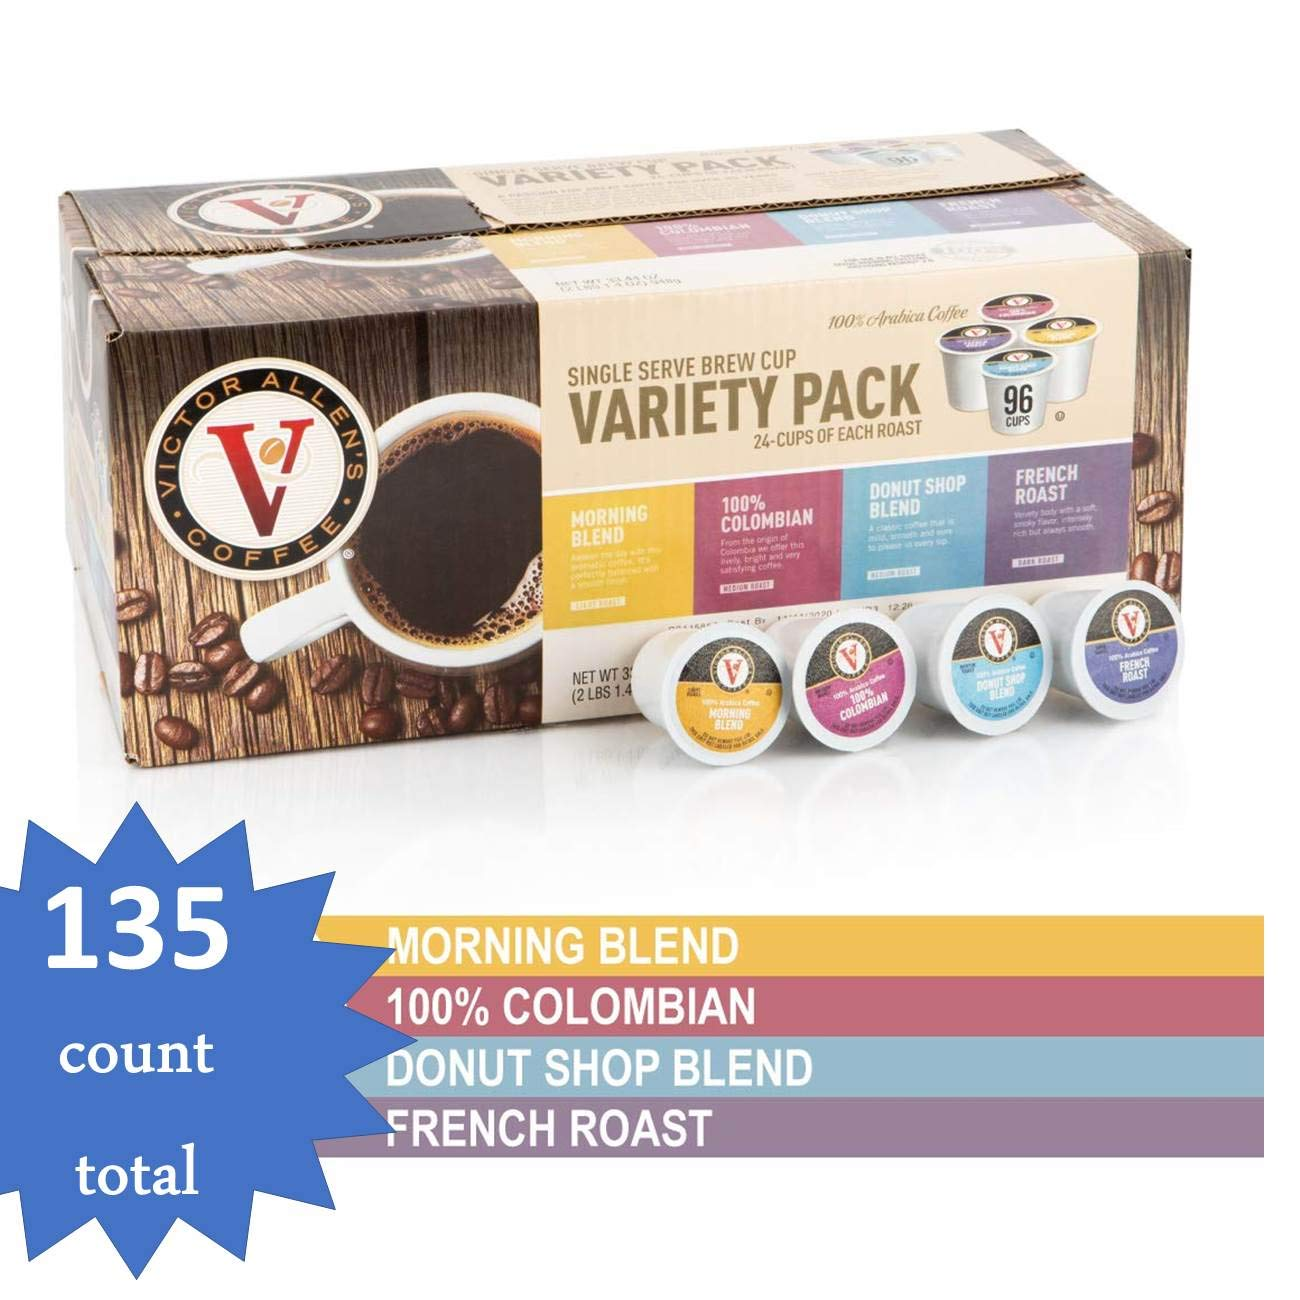 Donut Shop, Morning Blend, 100% Colombian, and French Roast Variety Pack for K-Cup, Keurig 2.0 Brewers, 135 Count total Victor Allens Coffee Single Serve Coffee Pods (Unflavored- 135 Count) by Victor Allen